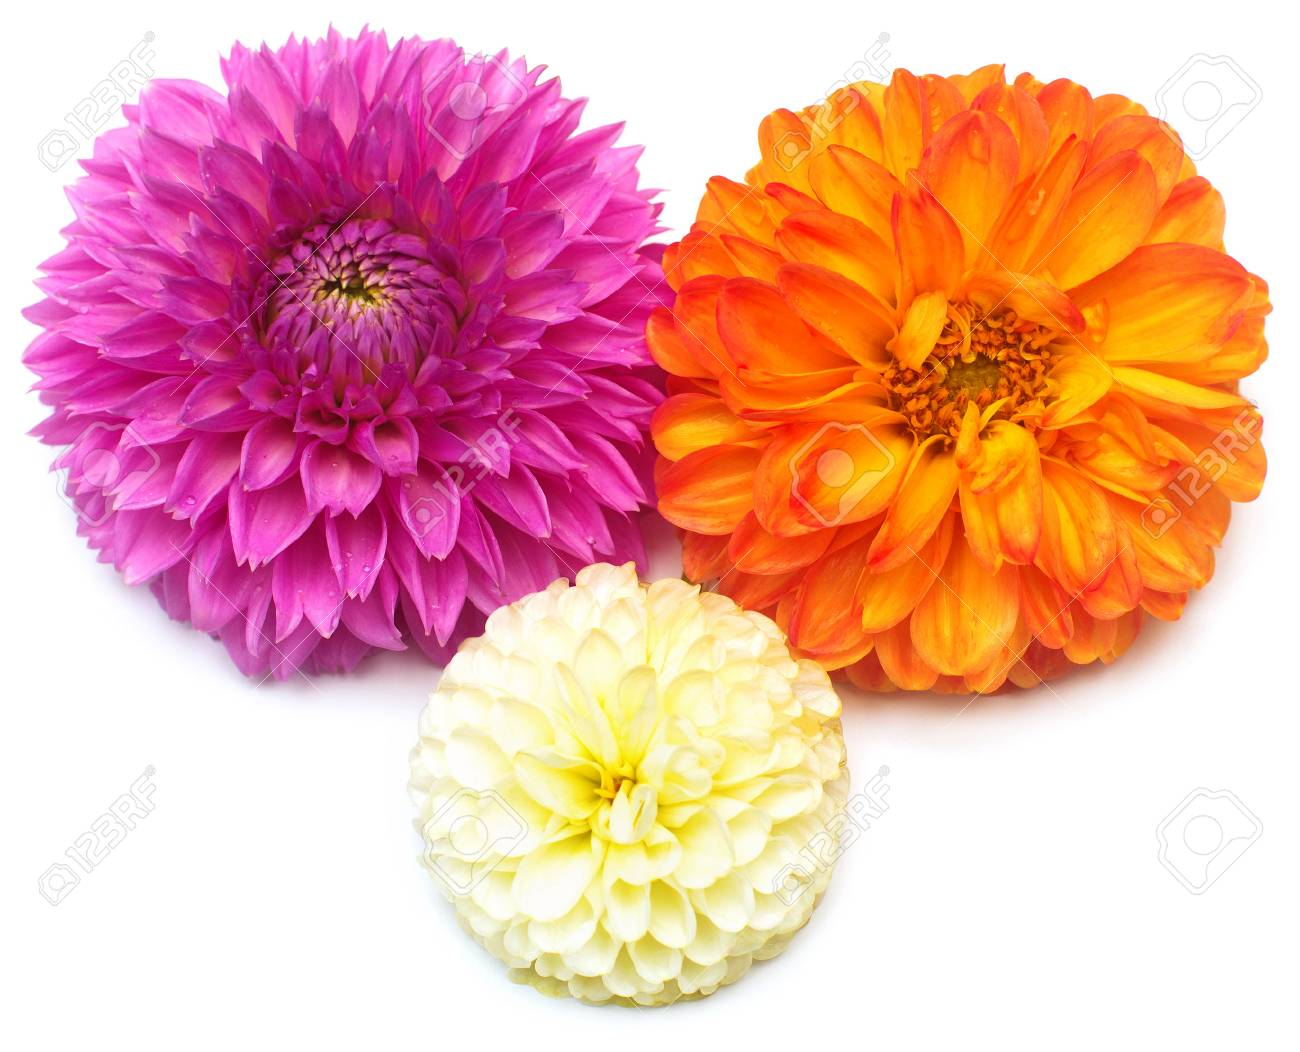 Three Dahlias Flowers Isolated On White Background Flat Lay